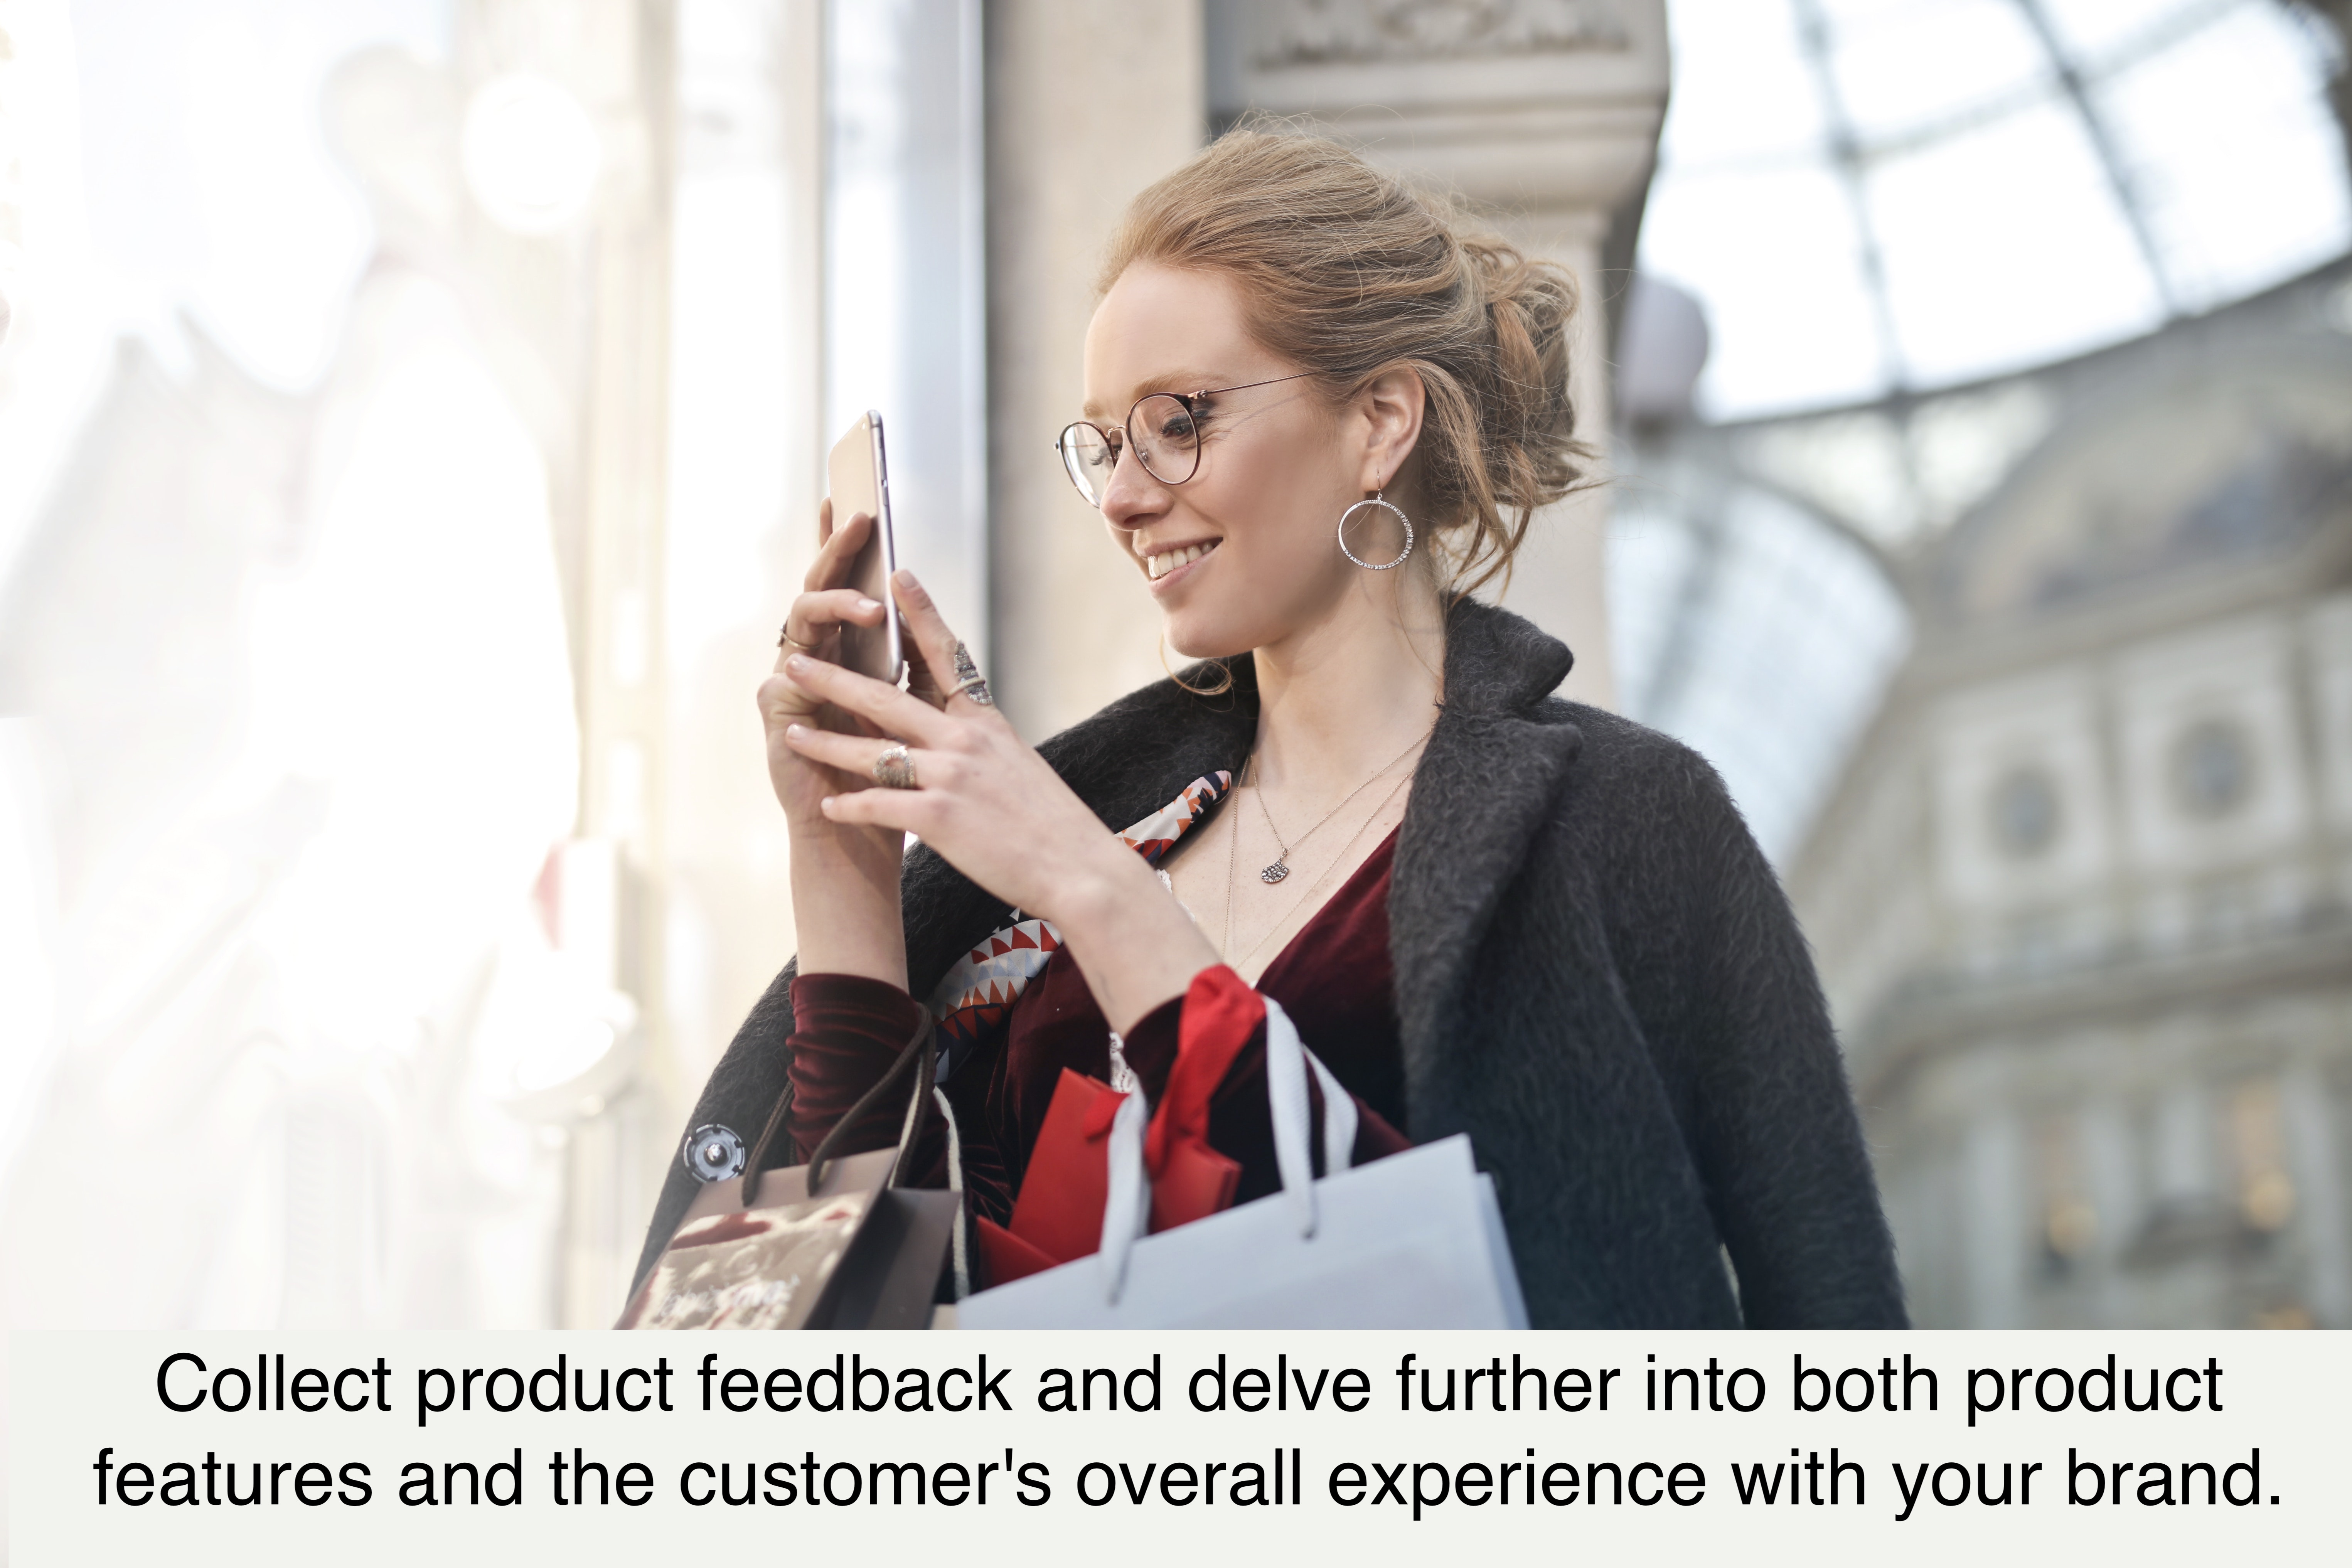 Collect product feedback and delve further into both product features and the customer's overall experience with your brand.